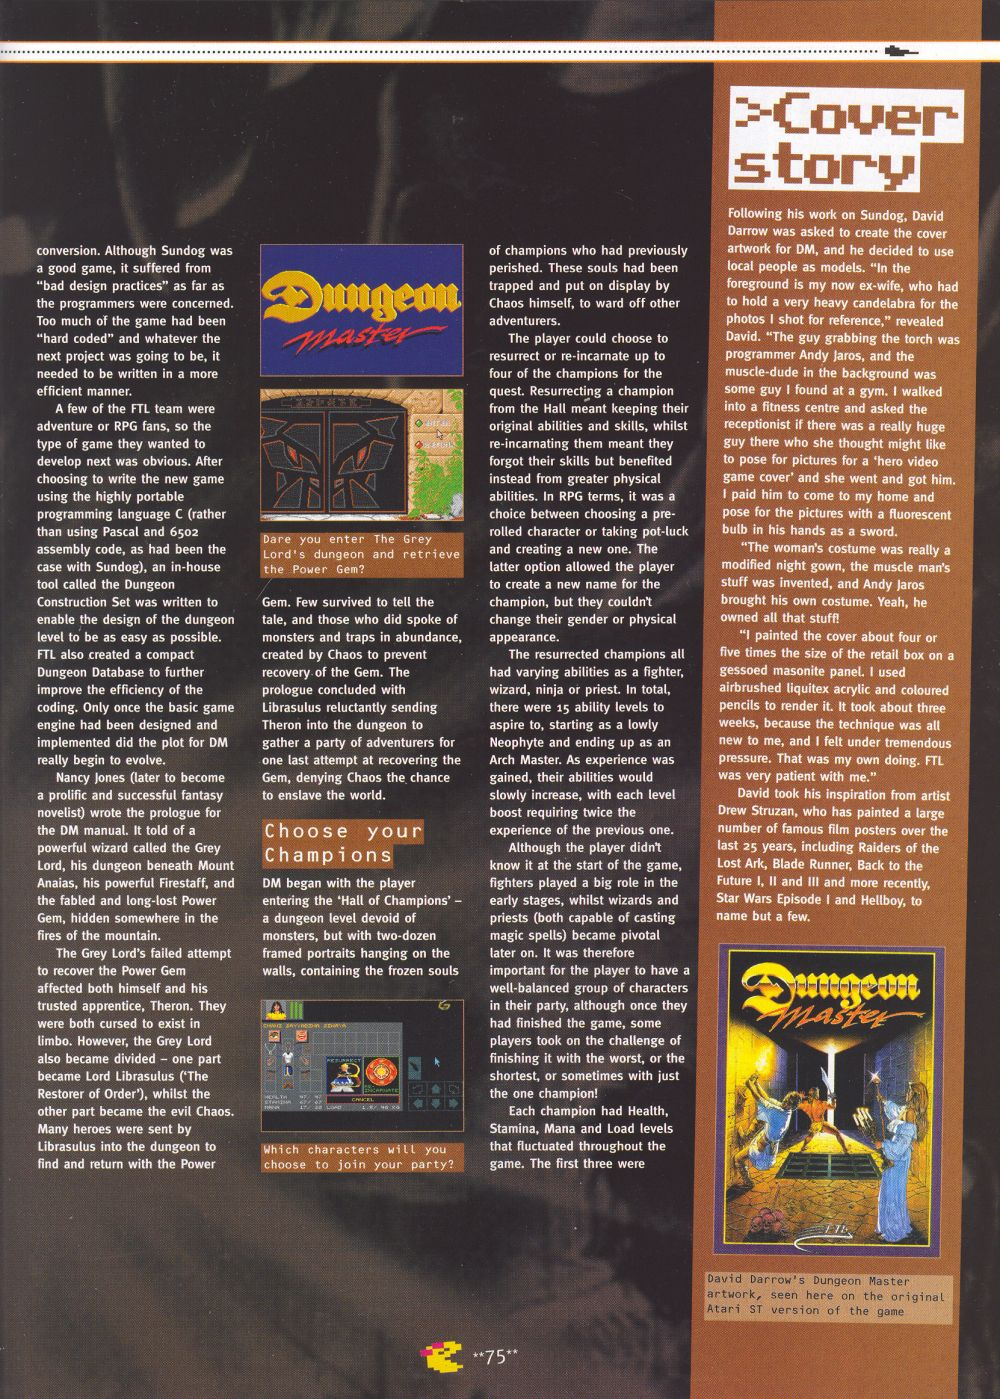 An article titled 'Mastering Chaos', printed in issue 10 of 'Retro Gamer' and written by Richard Hewison Page 04